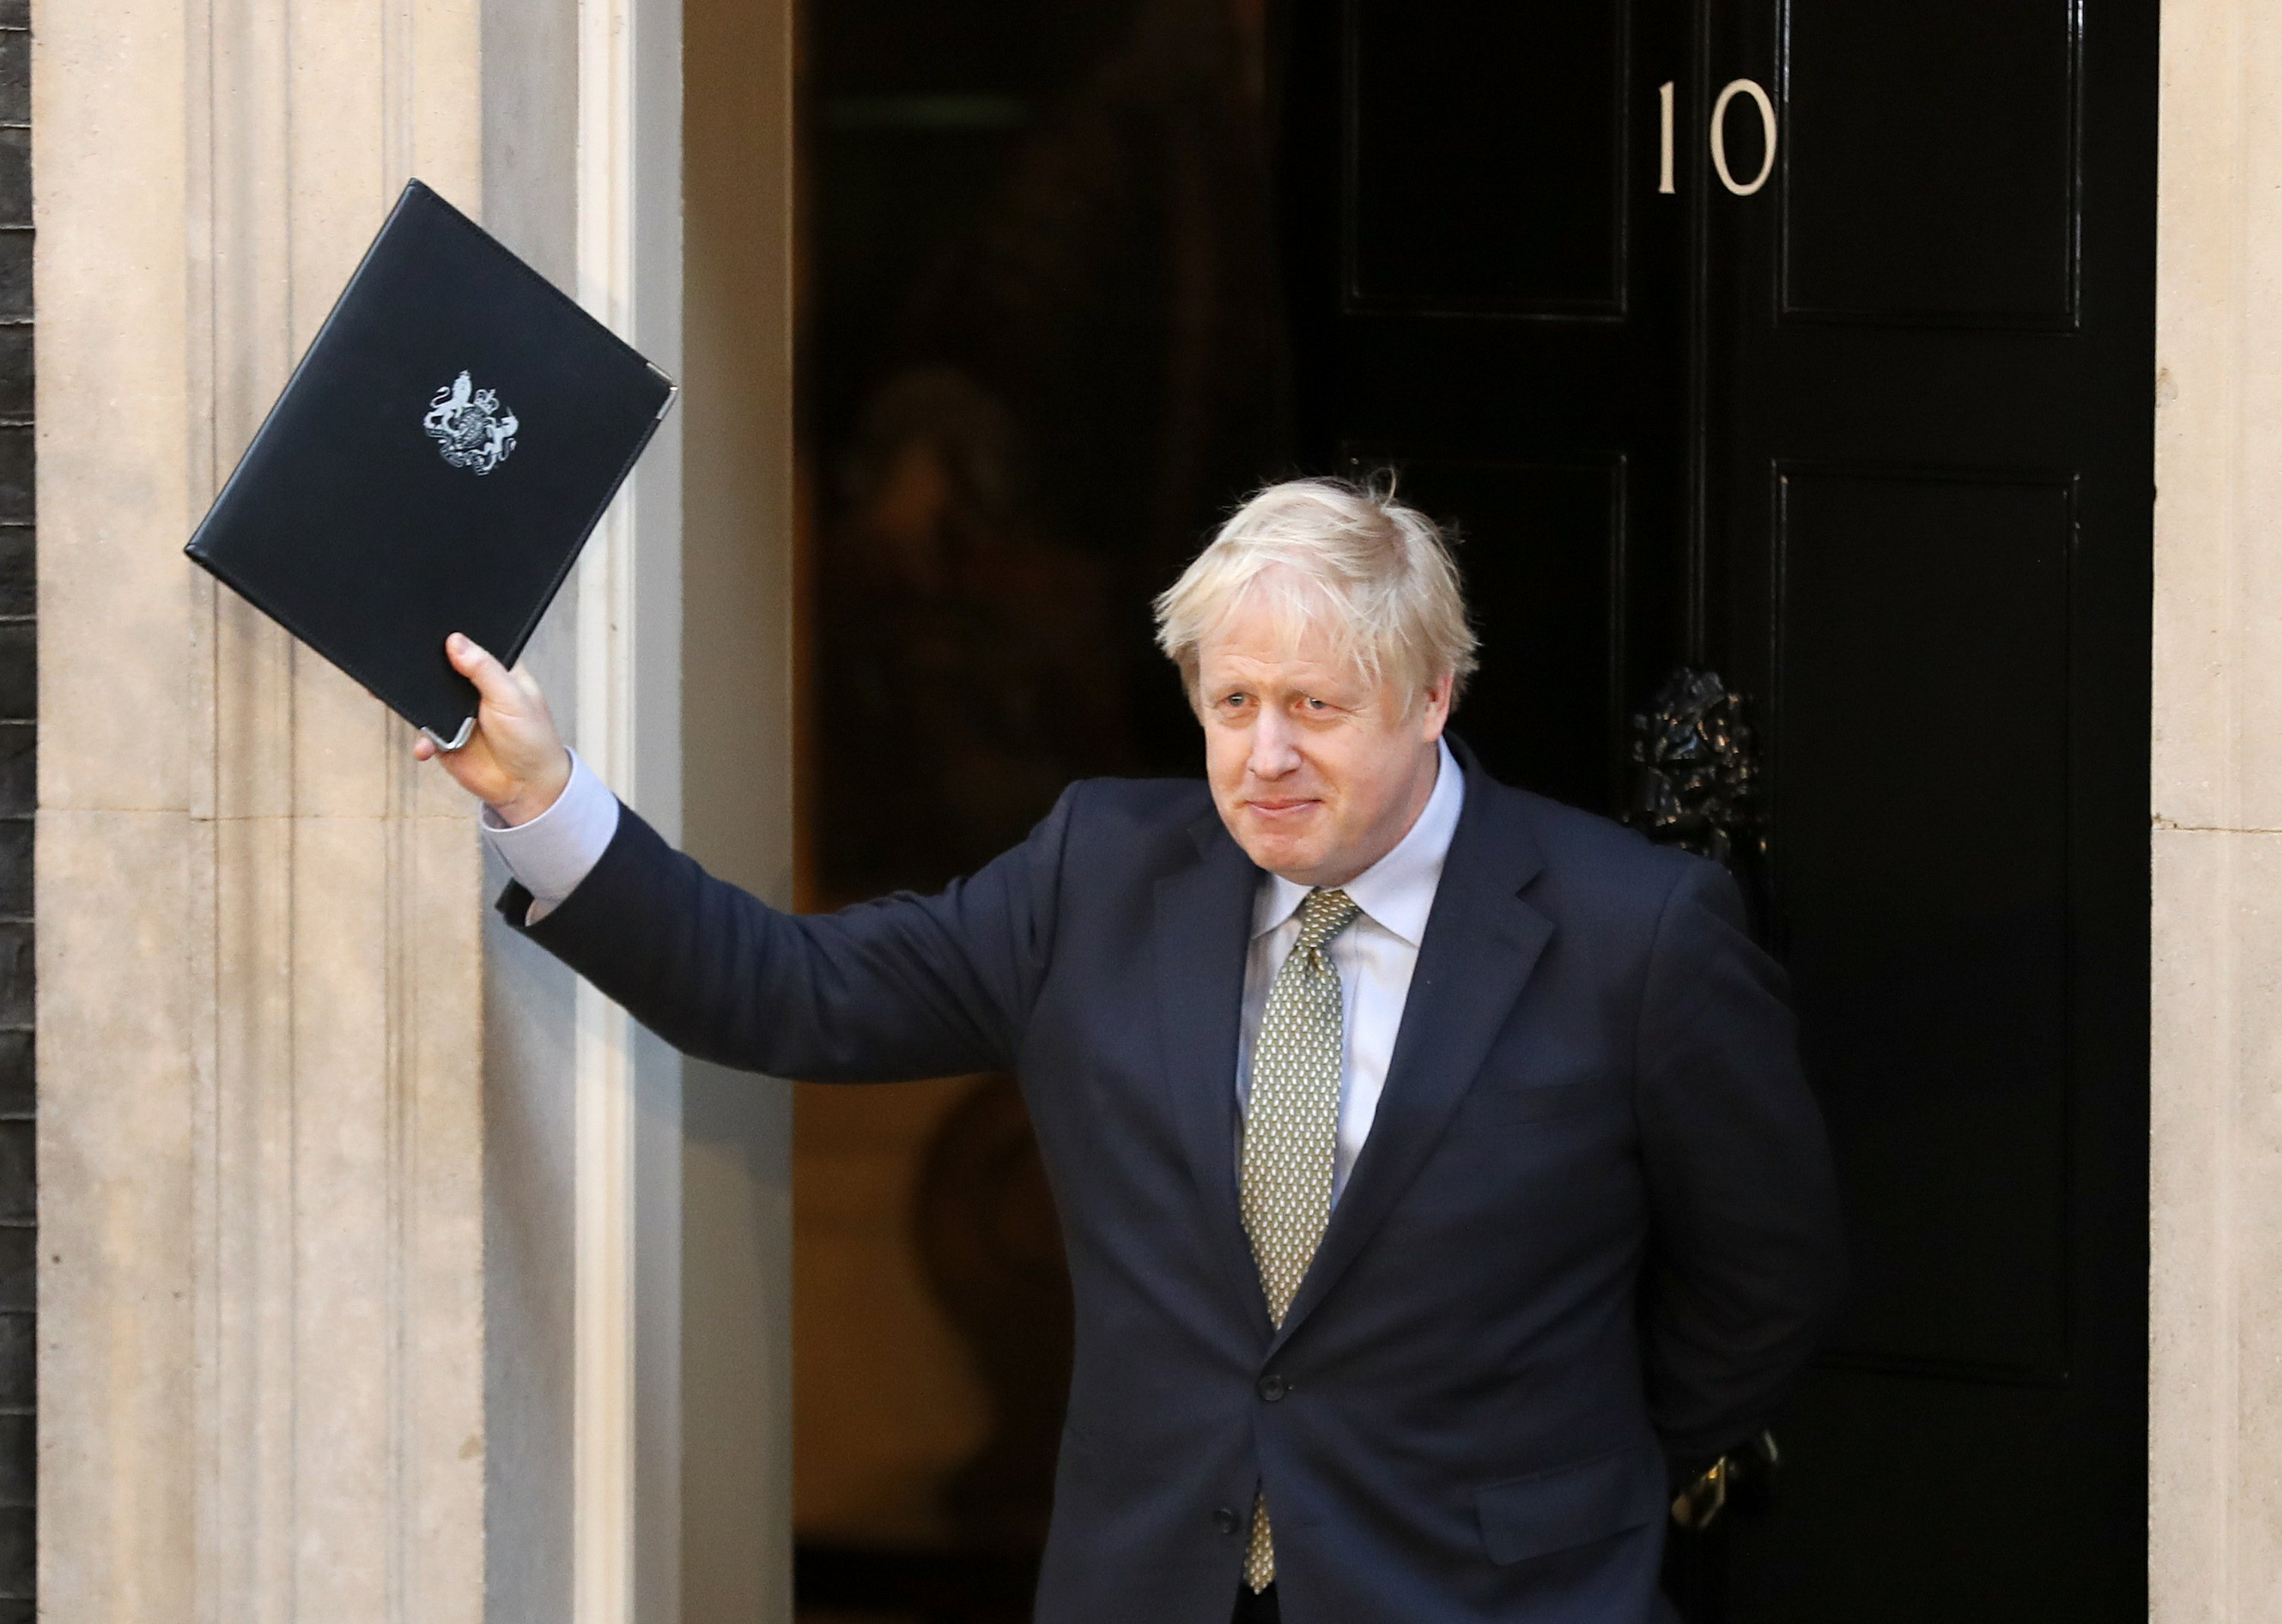 Johnson claims Brexit mandate with new conservative majority